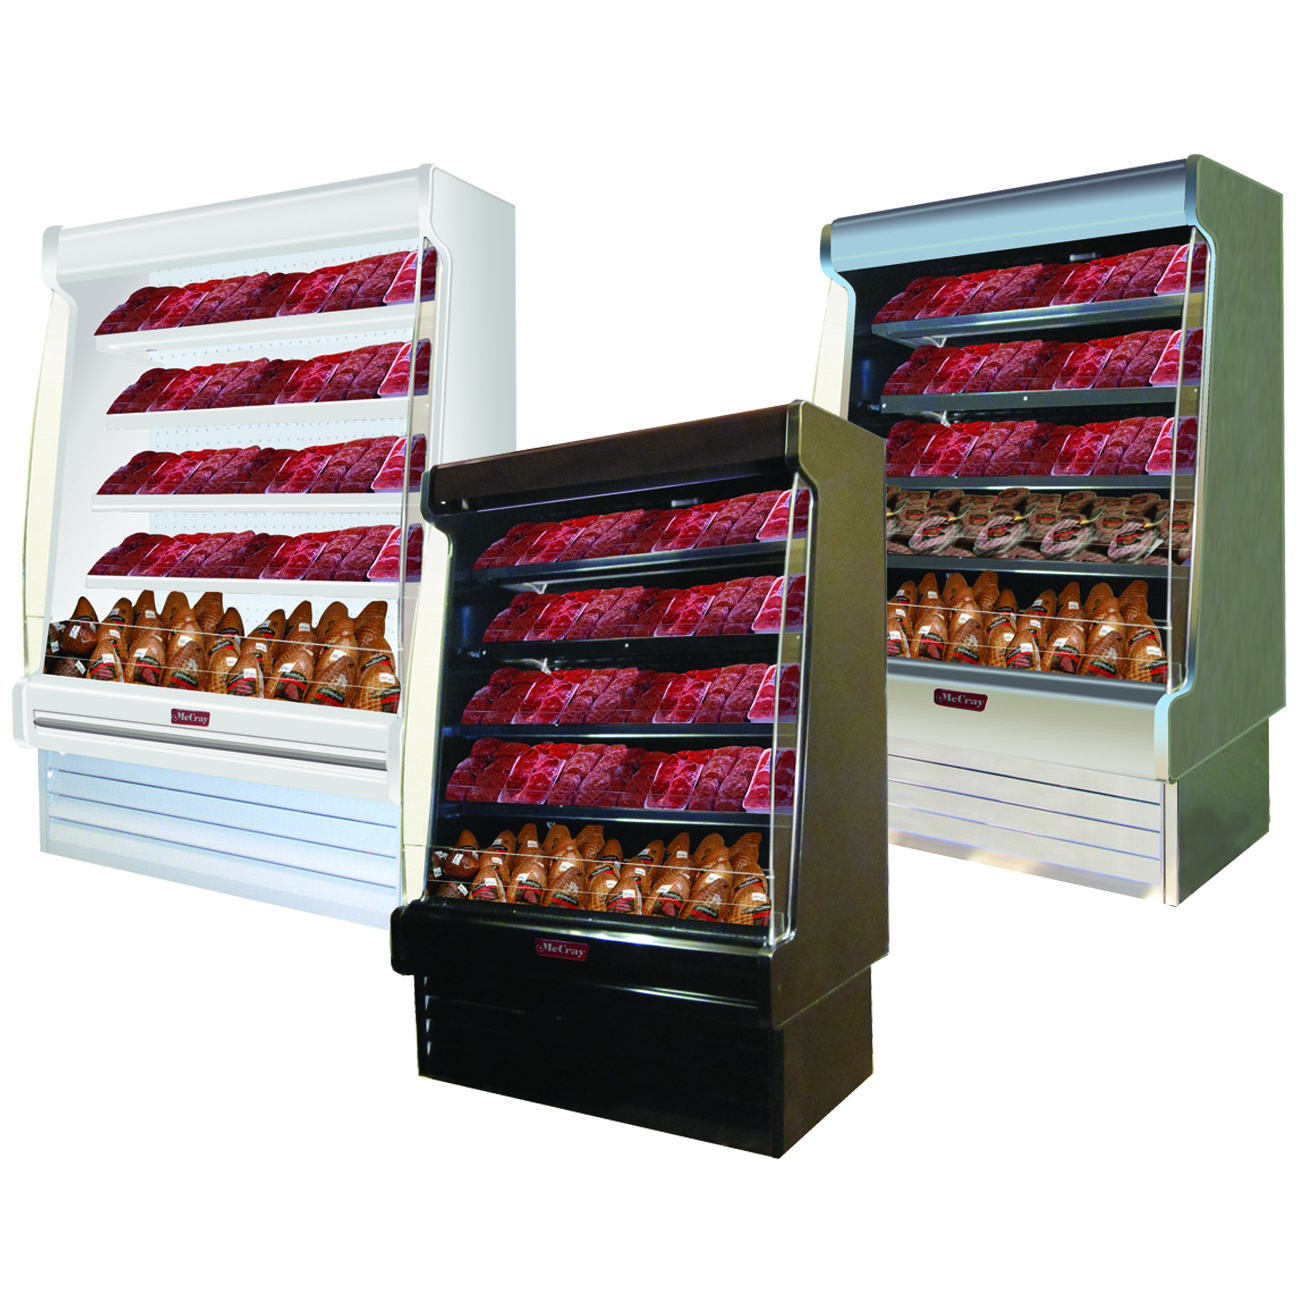 Howard-McCray R-OM35E-8S-S-LED merchandiser, open refrigerated display